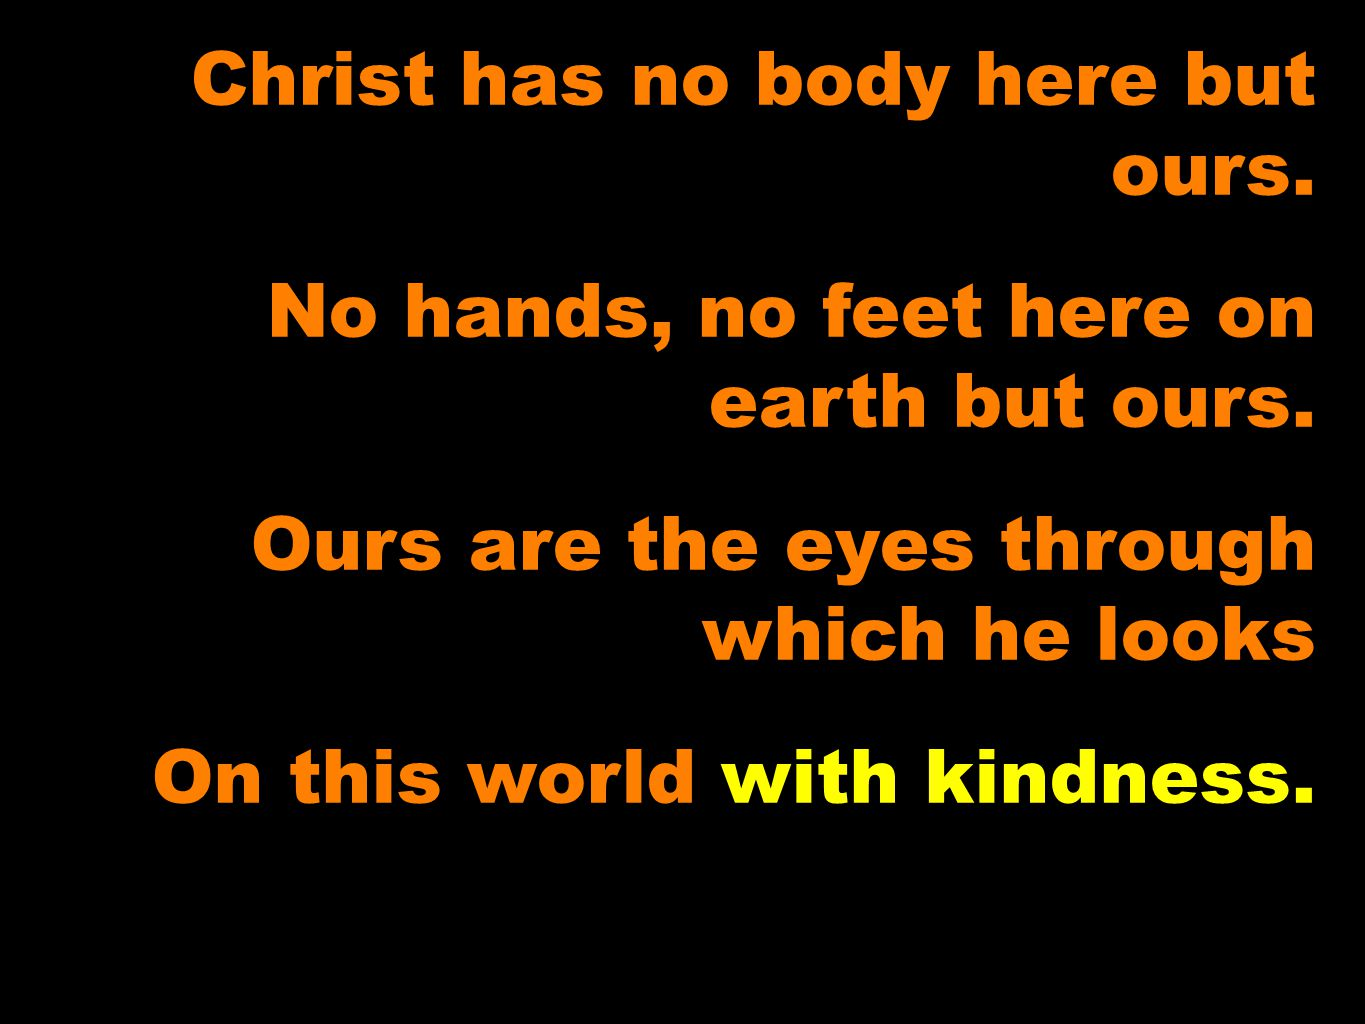 Christ has no body here but ours. No hands, no feet here on earth but ours.